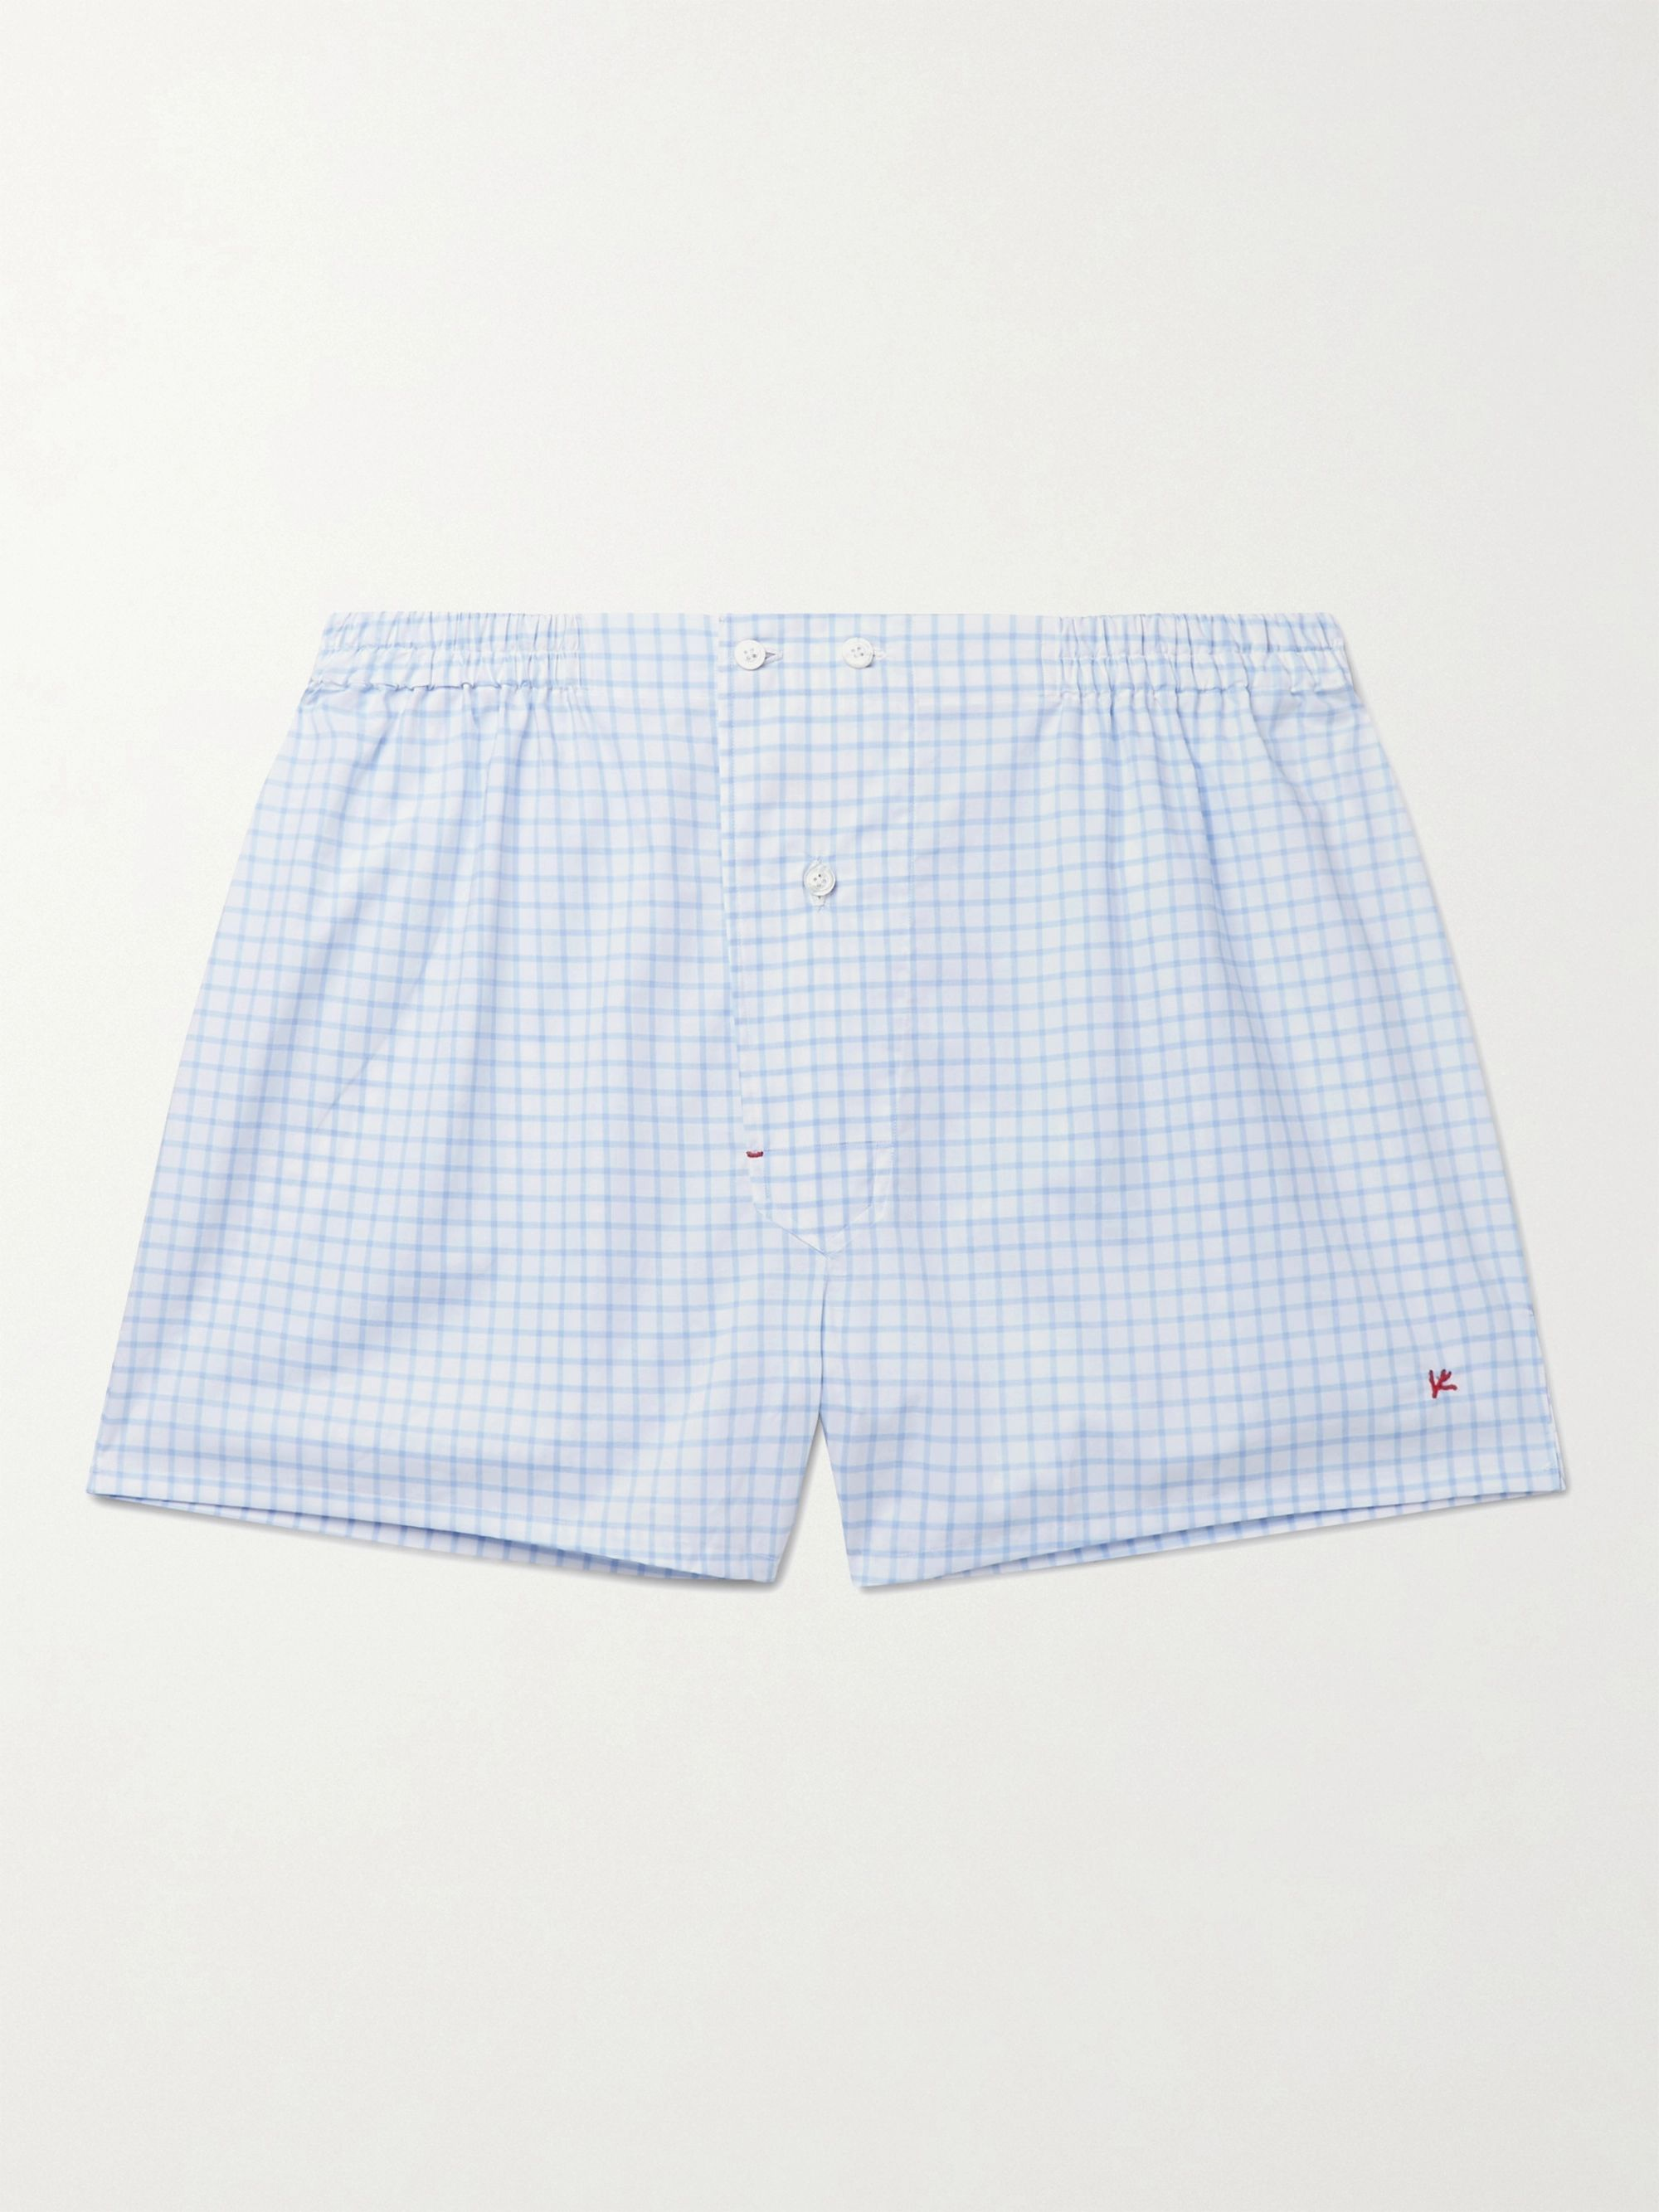 Isaia Windowpane-Checked Cotton Boxer Shorts